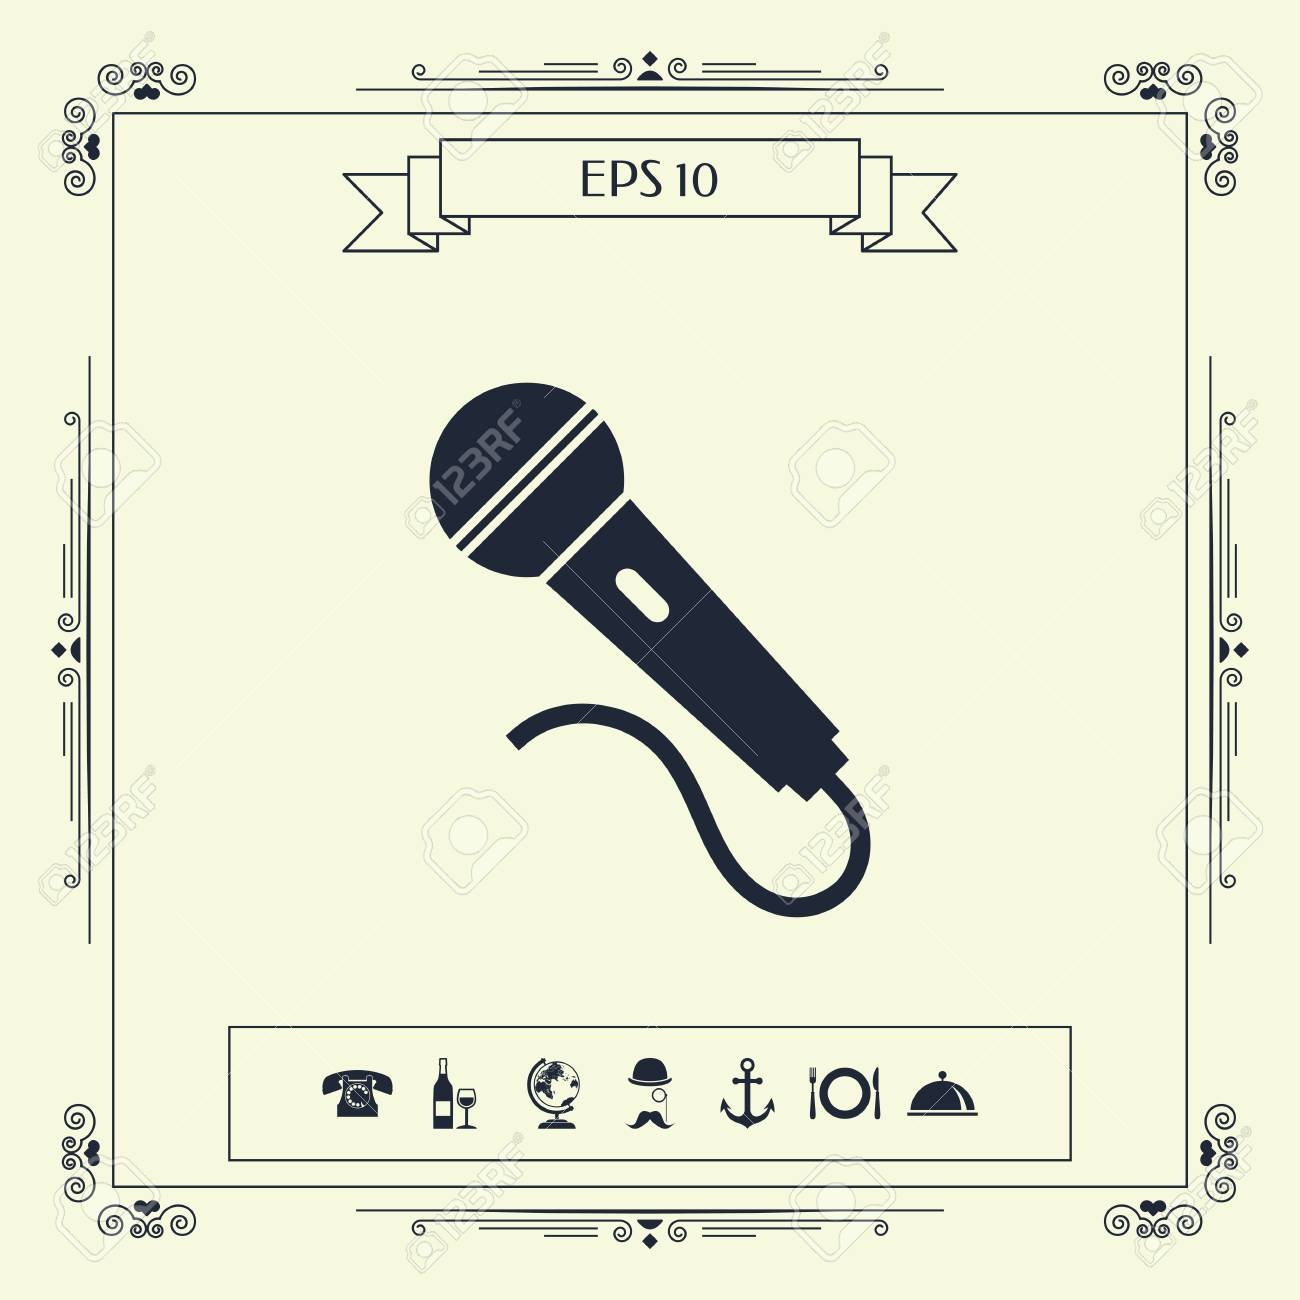 microphone symbol icon signs and symbols graphic elementsmicrophone symbol icon signs and symbols graphic elements for your design stock vector